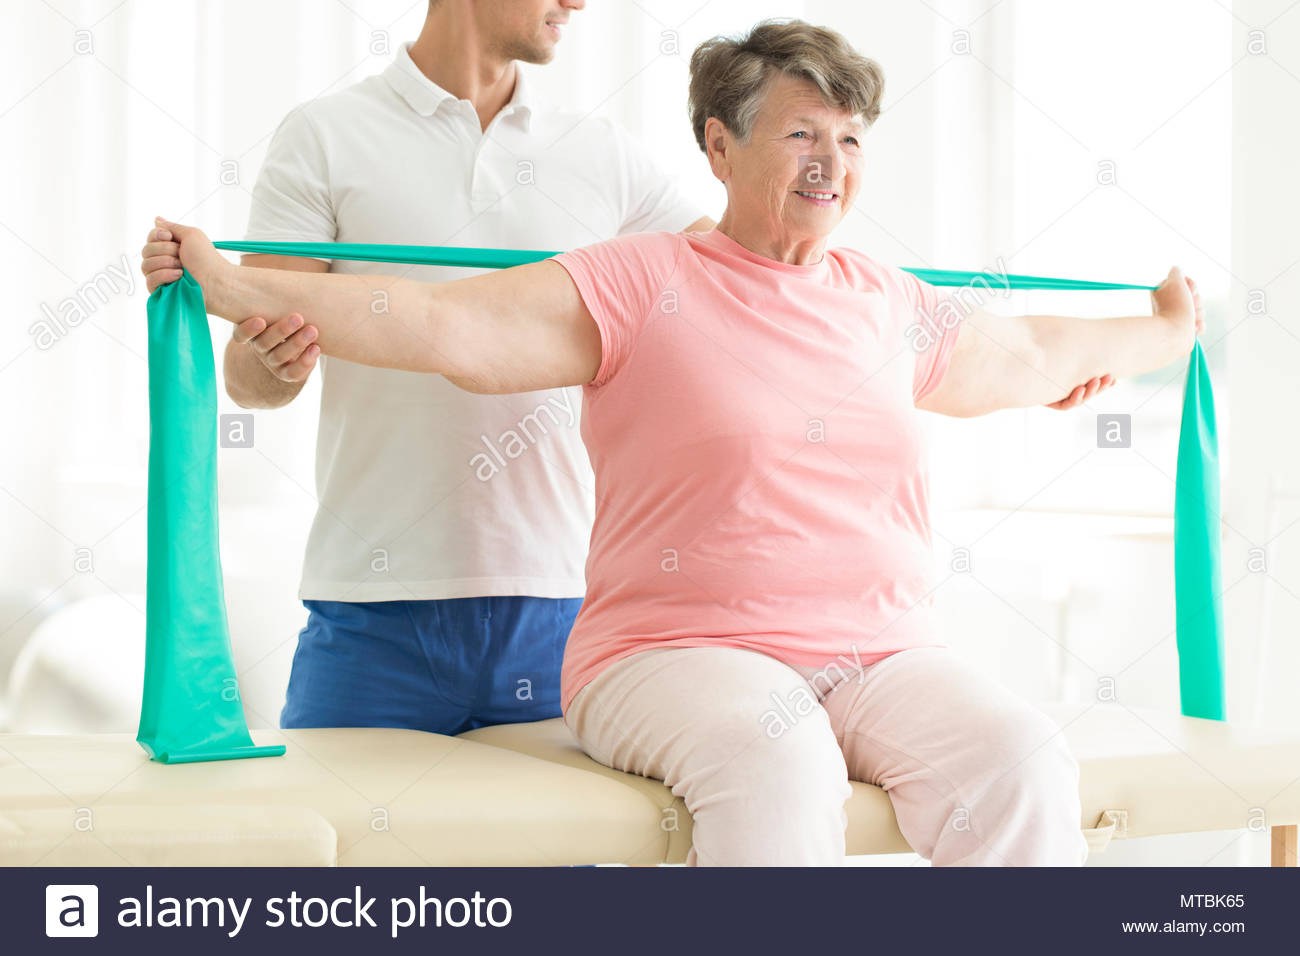 Physiotherapist providing help with easing the pain of joints through pnf exercises involving a scarf for his elderly patient - Stock Image